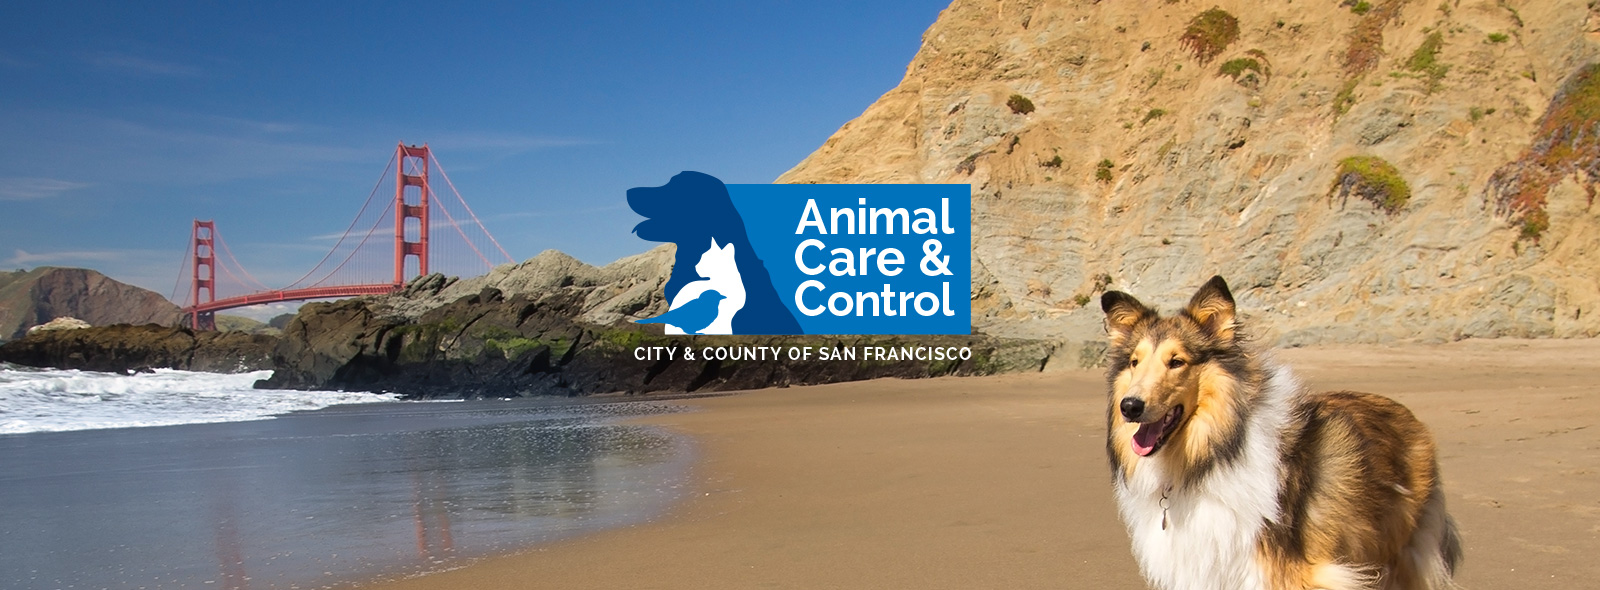 SF Animal Care and Control Logo Website Header with Golden Gate Bridge and Dog